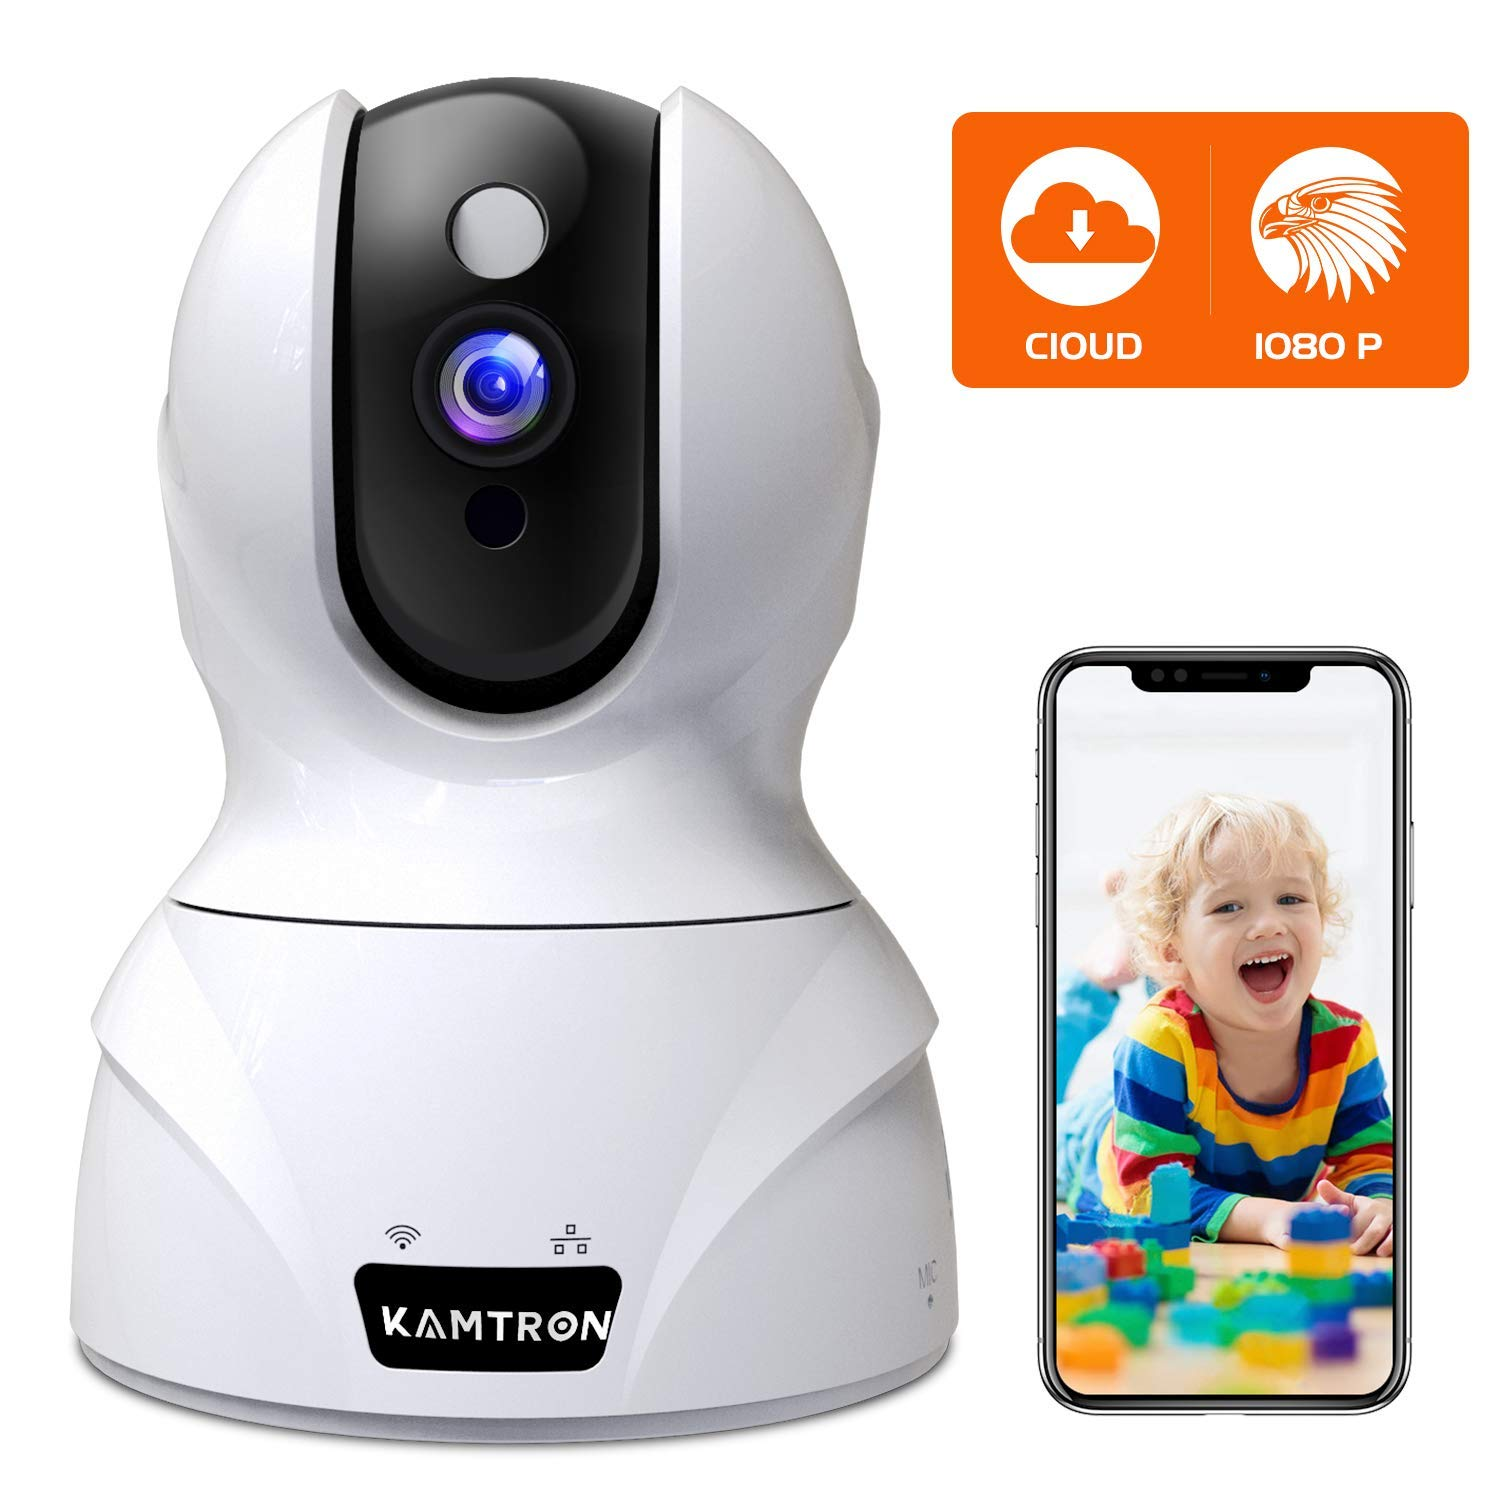 Security Camera 1080P Pet Camera - KAMTRON WiFi Home Security System for Office/Baby Monitor, 2.4Ghz PTZ Indoor IP Wireless Dome Camera with Night Vision, Two-Way Audio, Cloud Service Available, White by KAMTRON